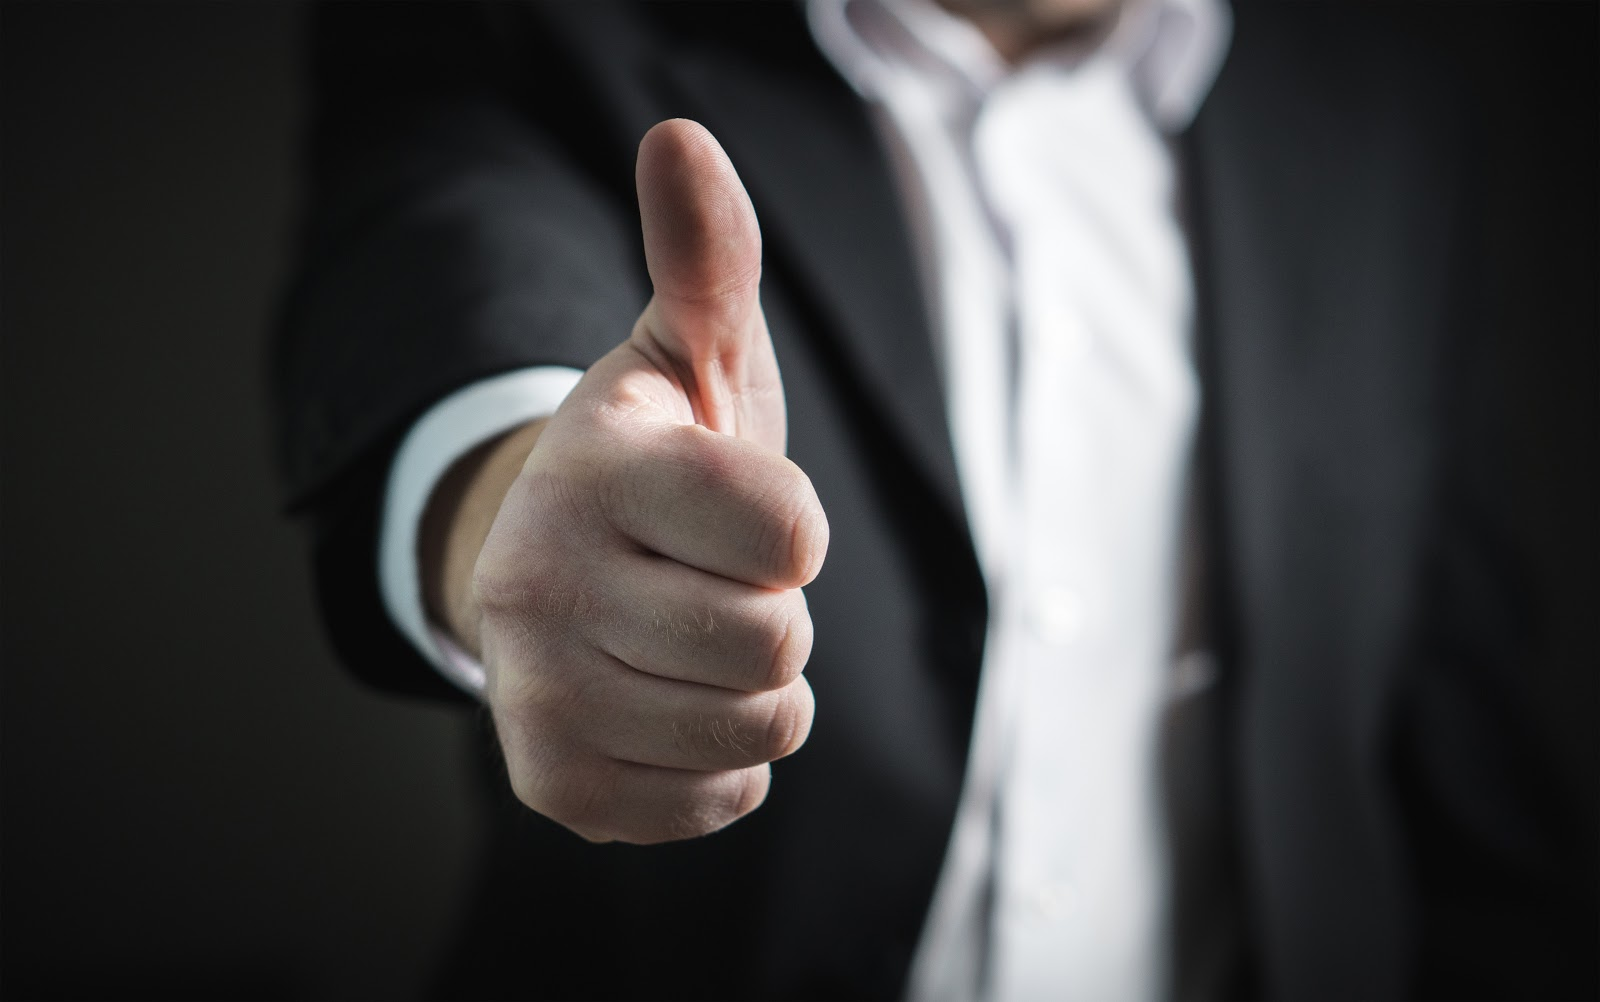 A person with a thumbs up